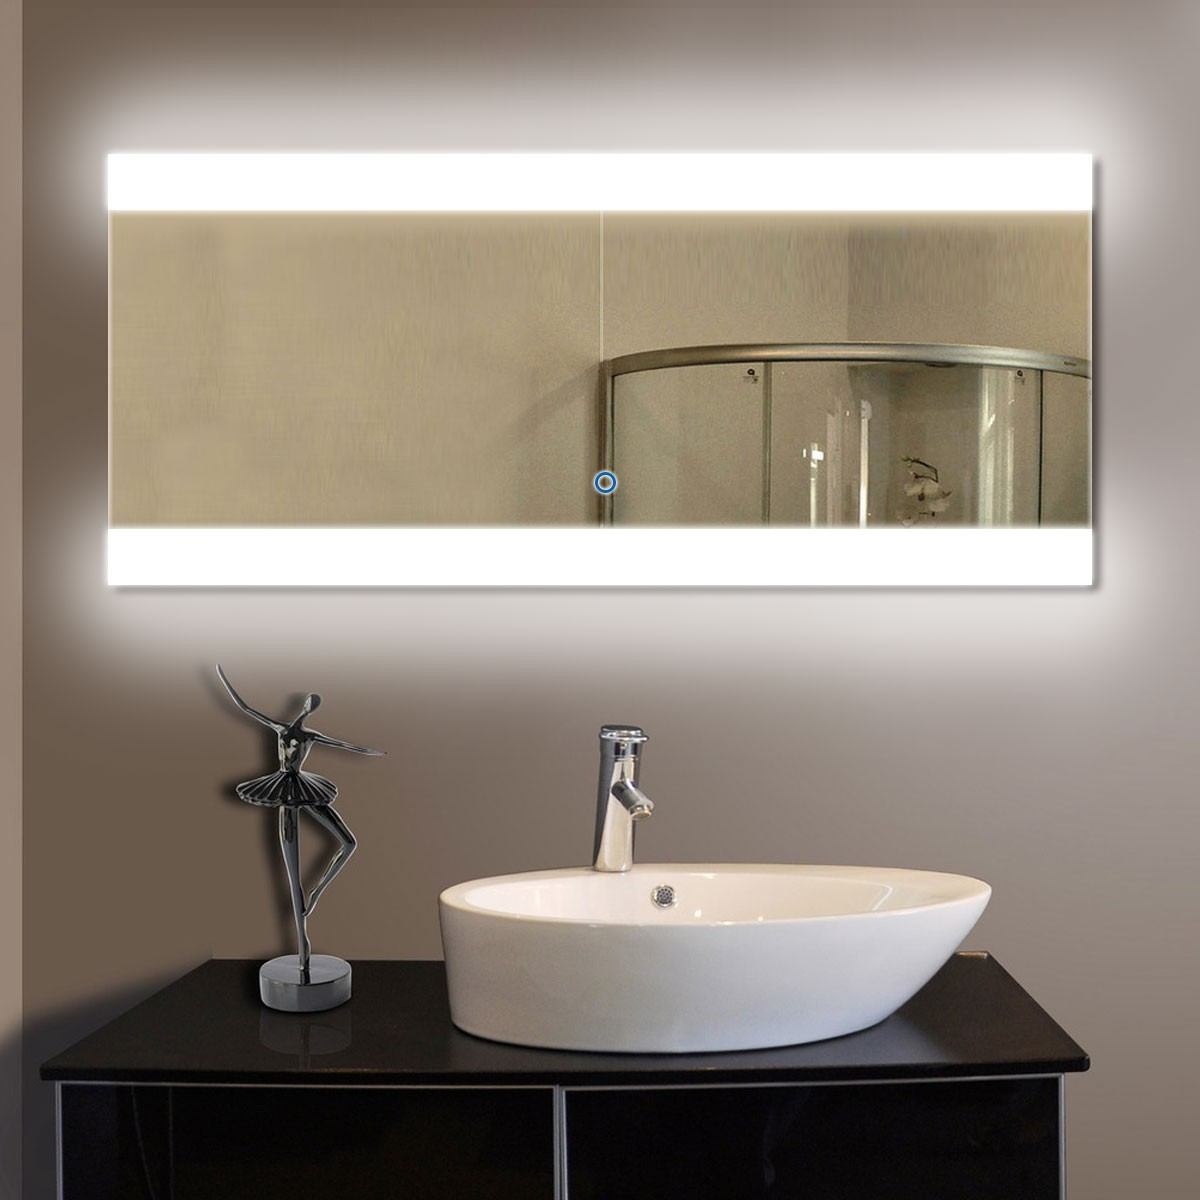 80 x 36 In. Horizontal LED Backlit Bathroom Mirror, Touch Button (DK-OD-T03-2)